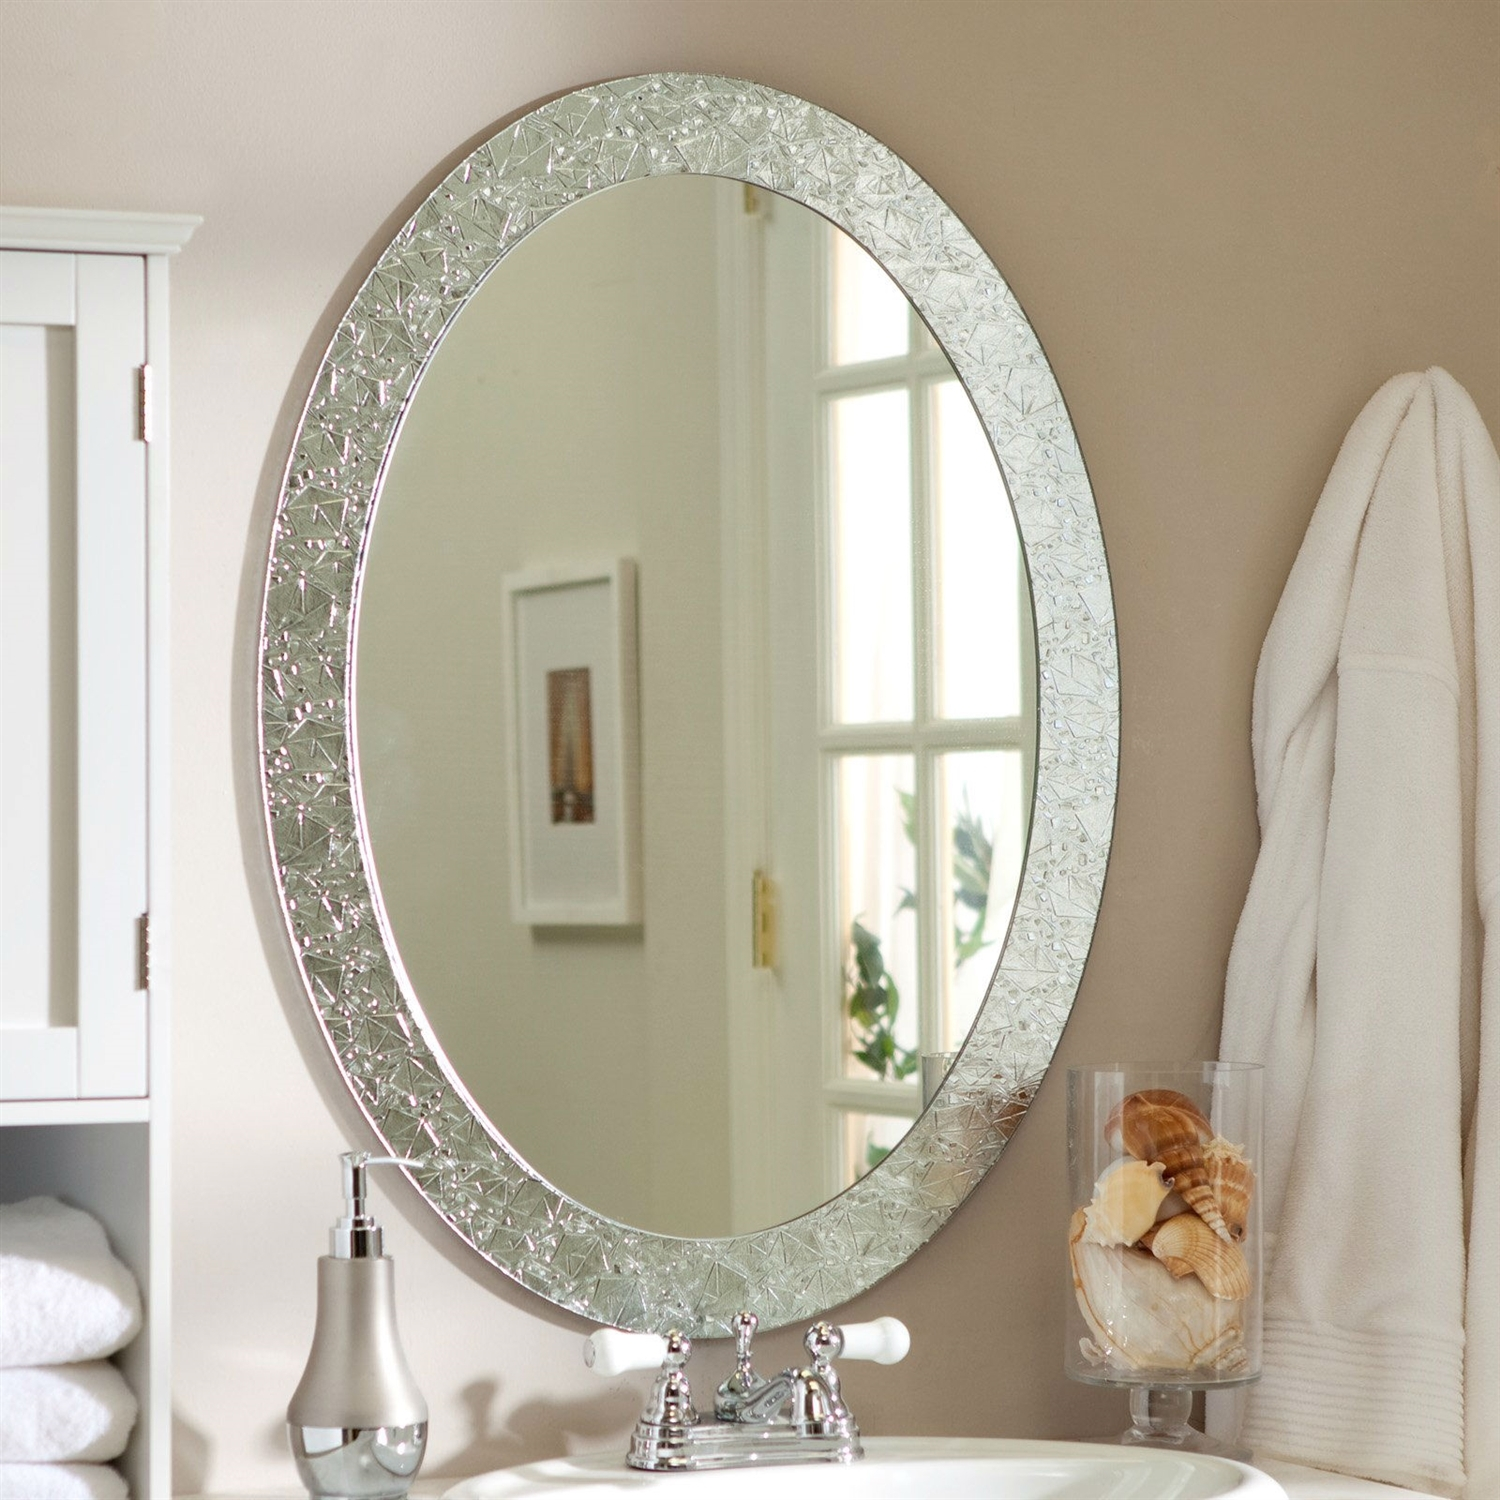 Simple Decoration Crystal Wall Mirror Sensational Design Intended For Wall Mirror With Crystals (Image 12 of 15)